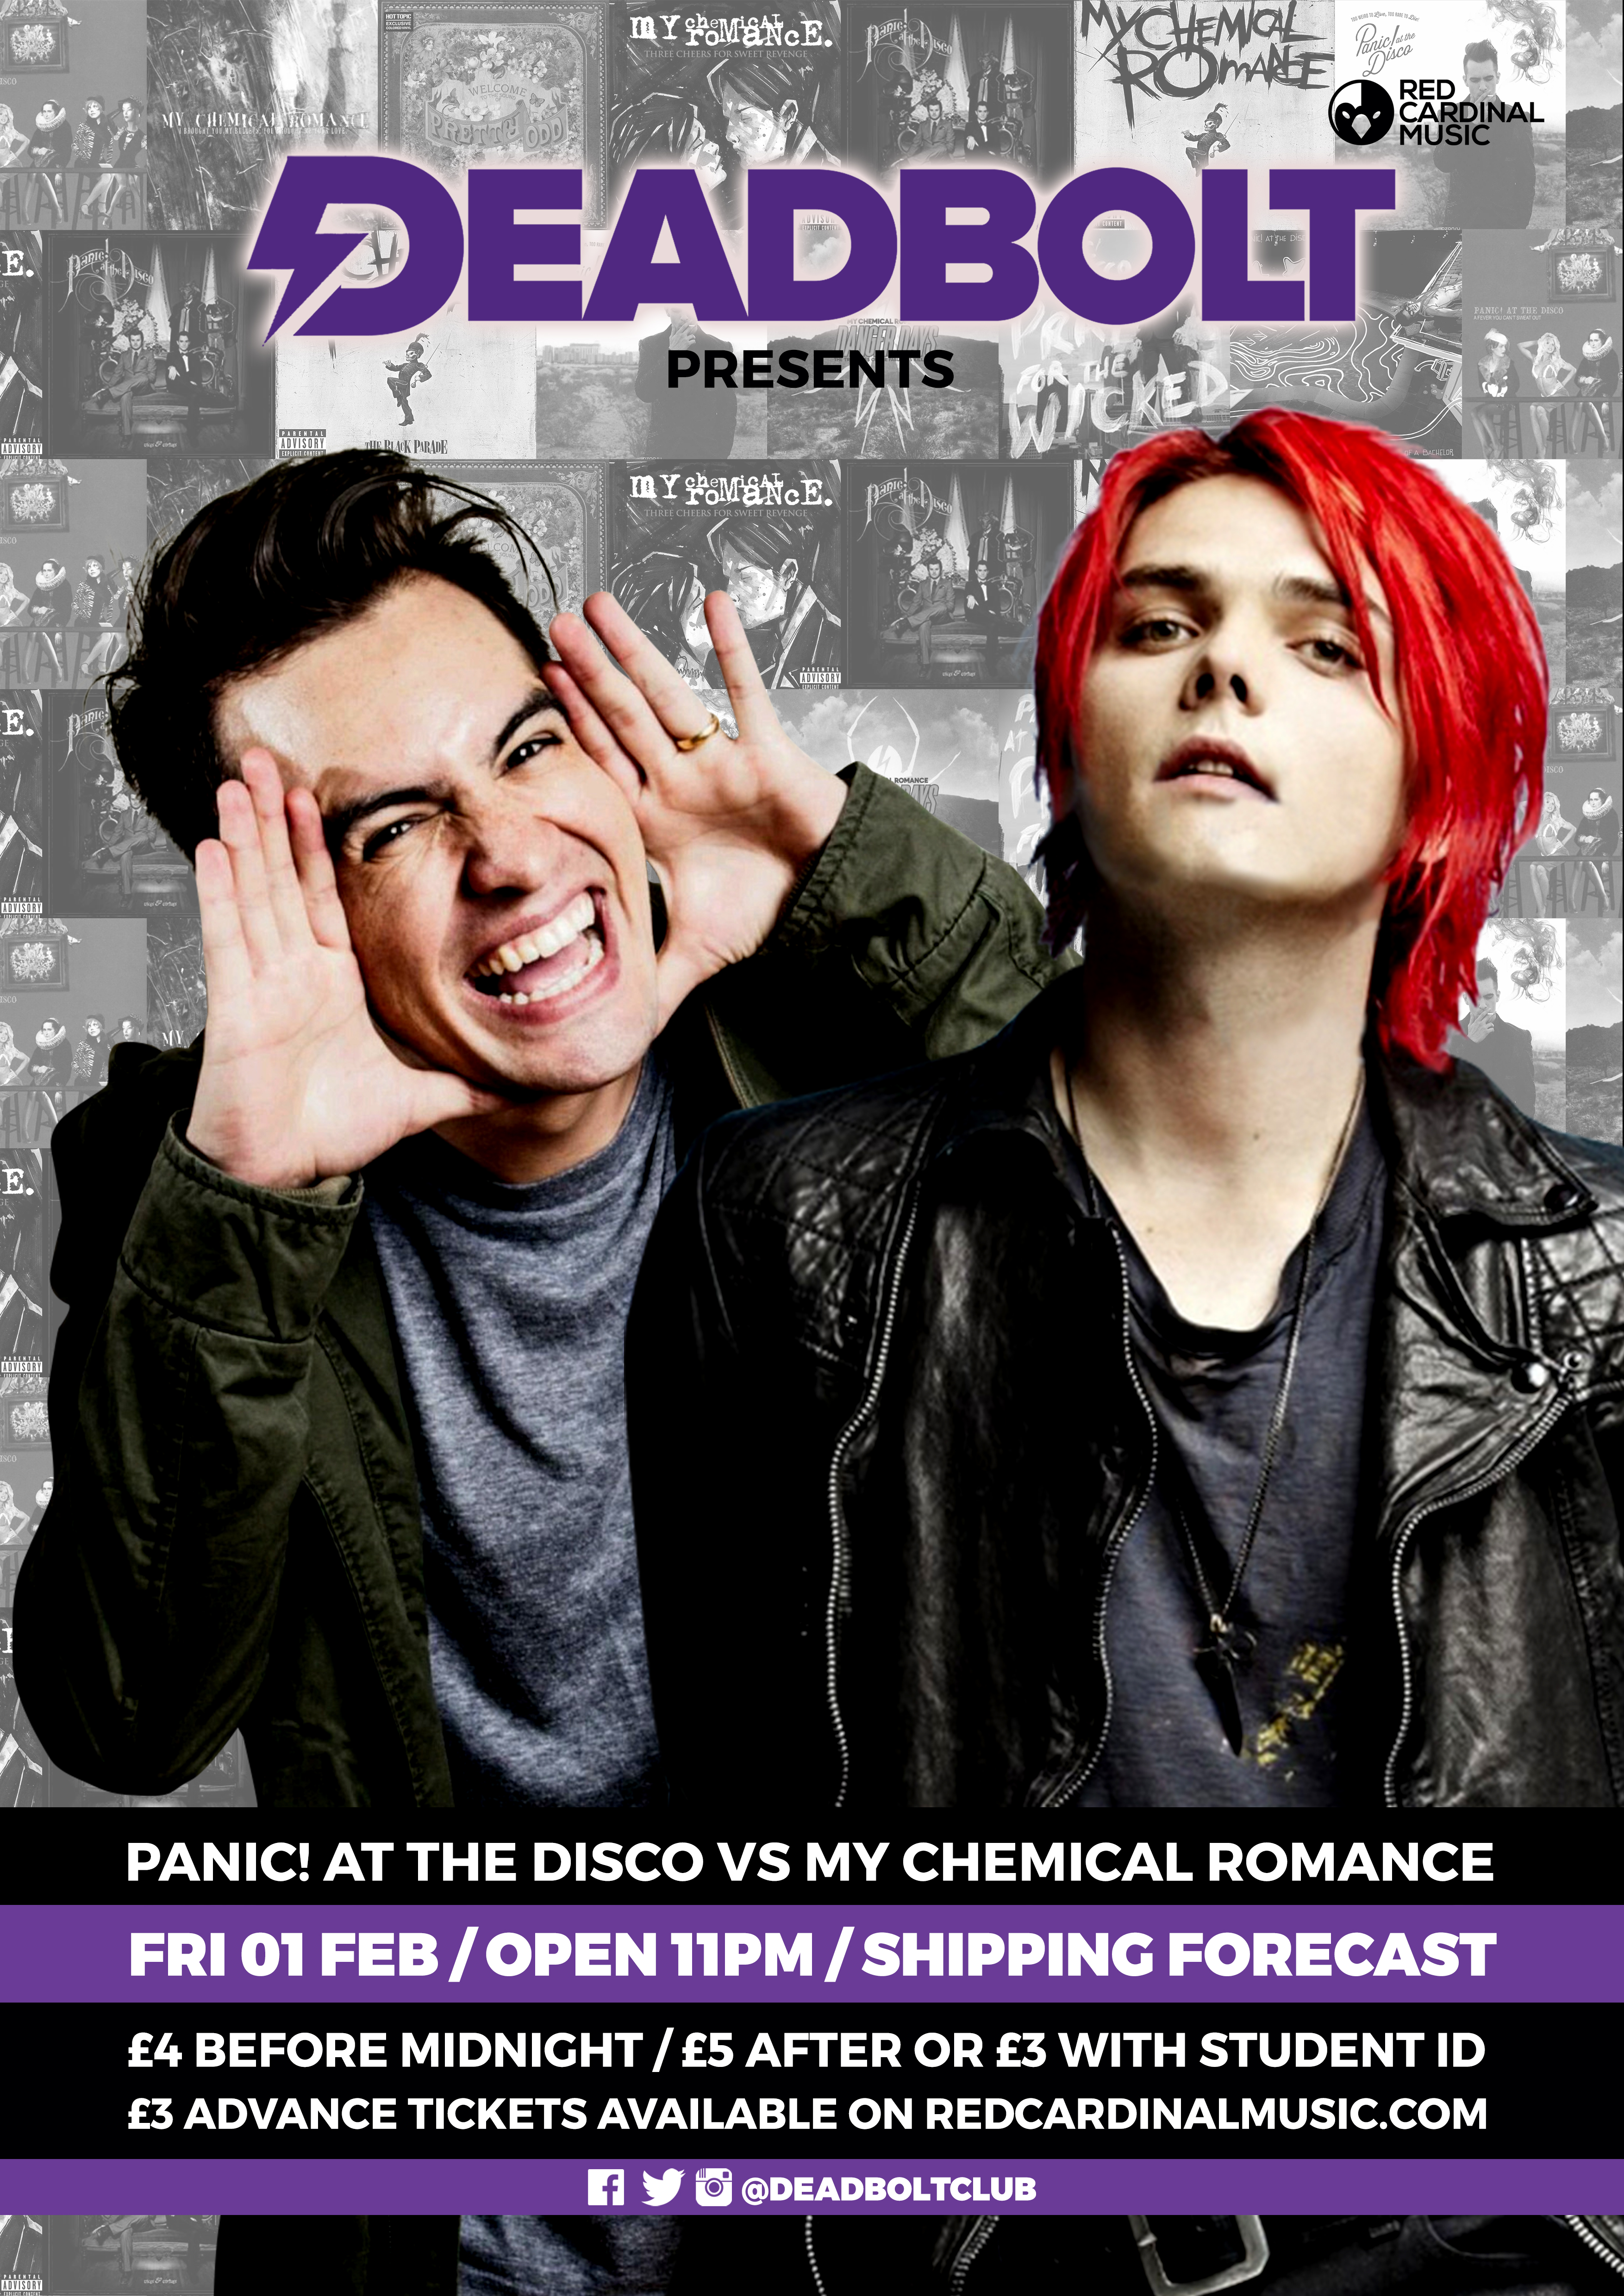 Deadbolt - Panic! At The Disco vs My Chemical Romance Special - Alternative Club Liverpool - Red Cardinal Music